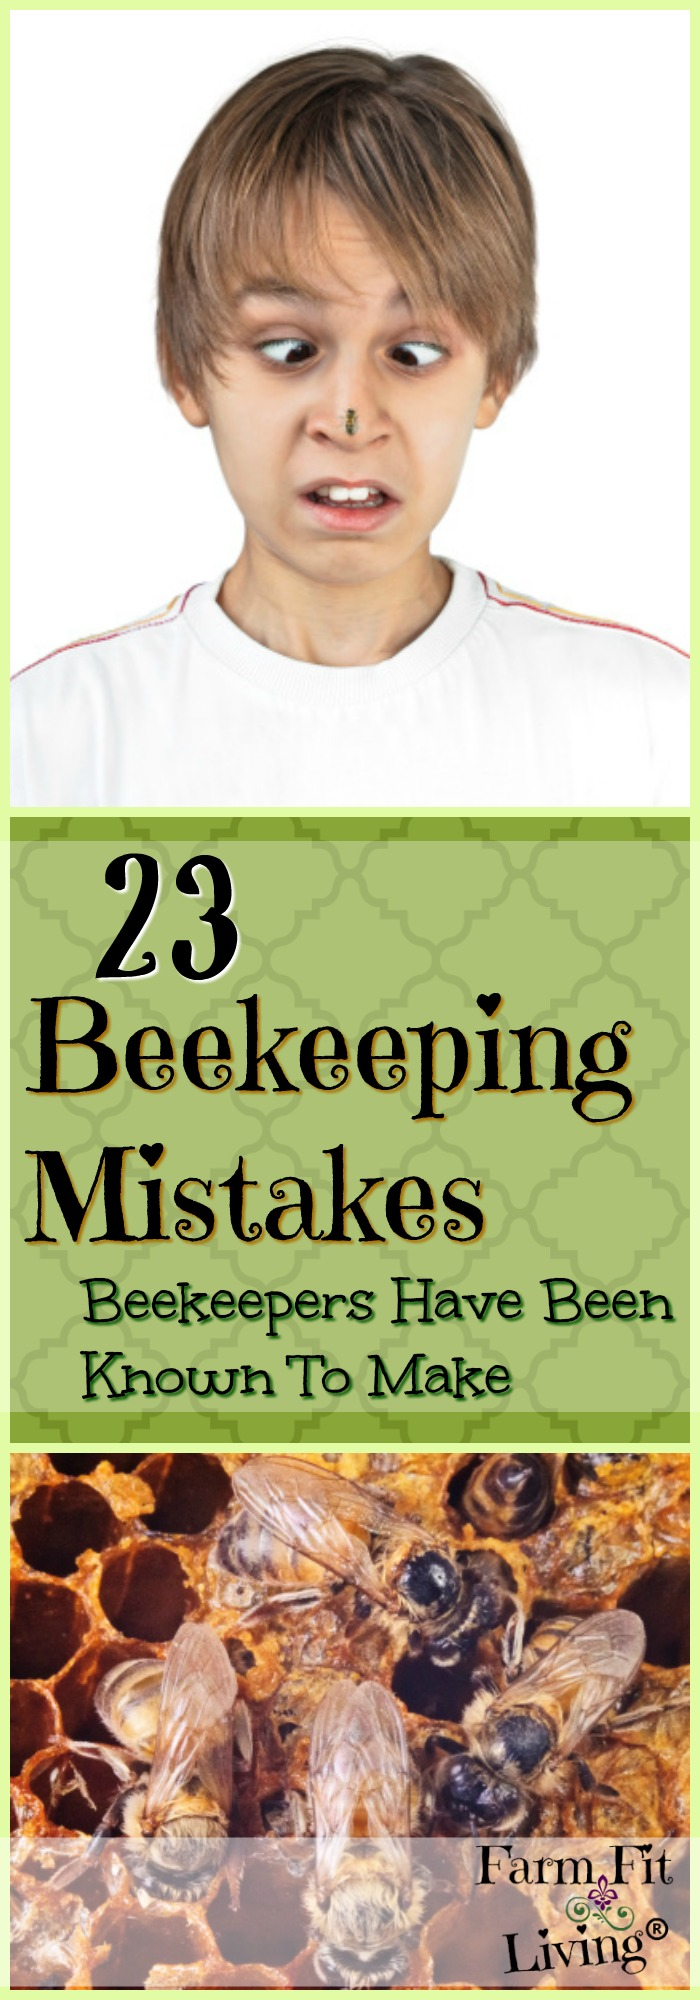 The best beekeepers have learned from their own beekeeping mistakes. Here are 23 categories of the most common mistakes that beekeepers have been known to make.